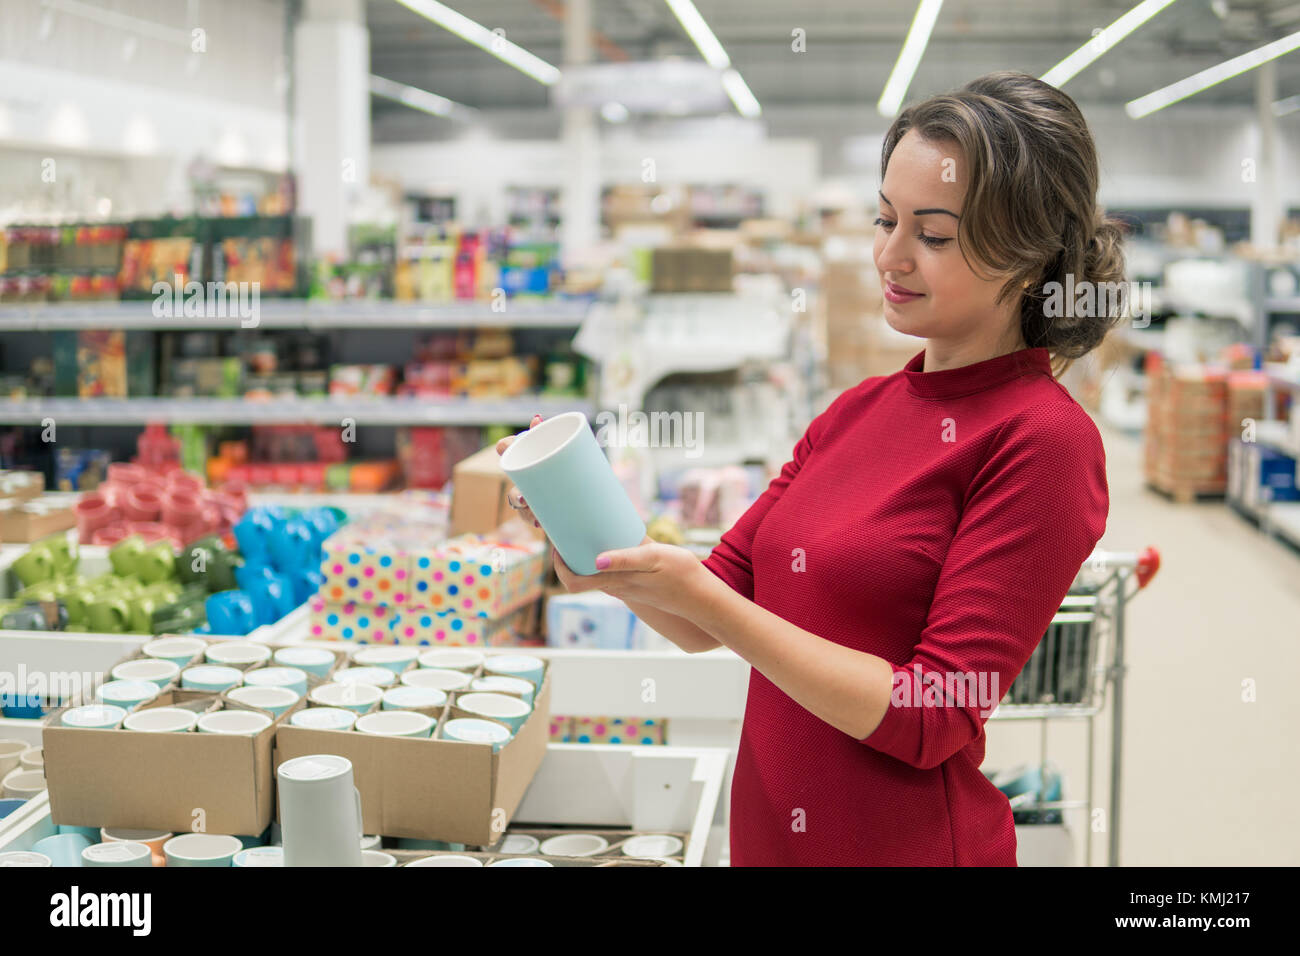 housewife customer choosing cup or mug in big supermarket mall - Stock Image